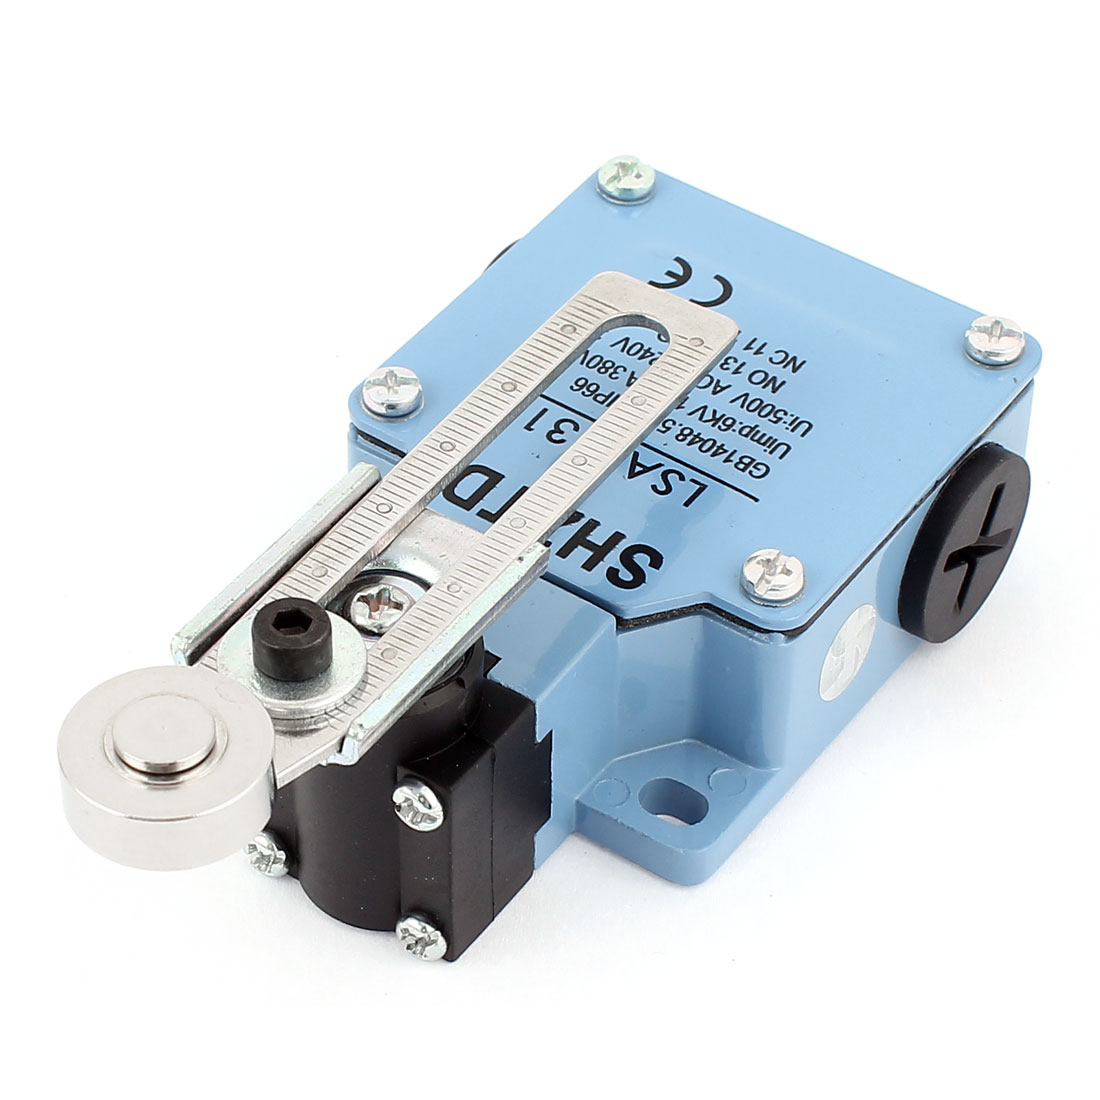 LSA-031 Momentary 1NO+1NC Adjustable Roller Arm Limit Switch for CNC Mill Plasma